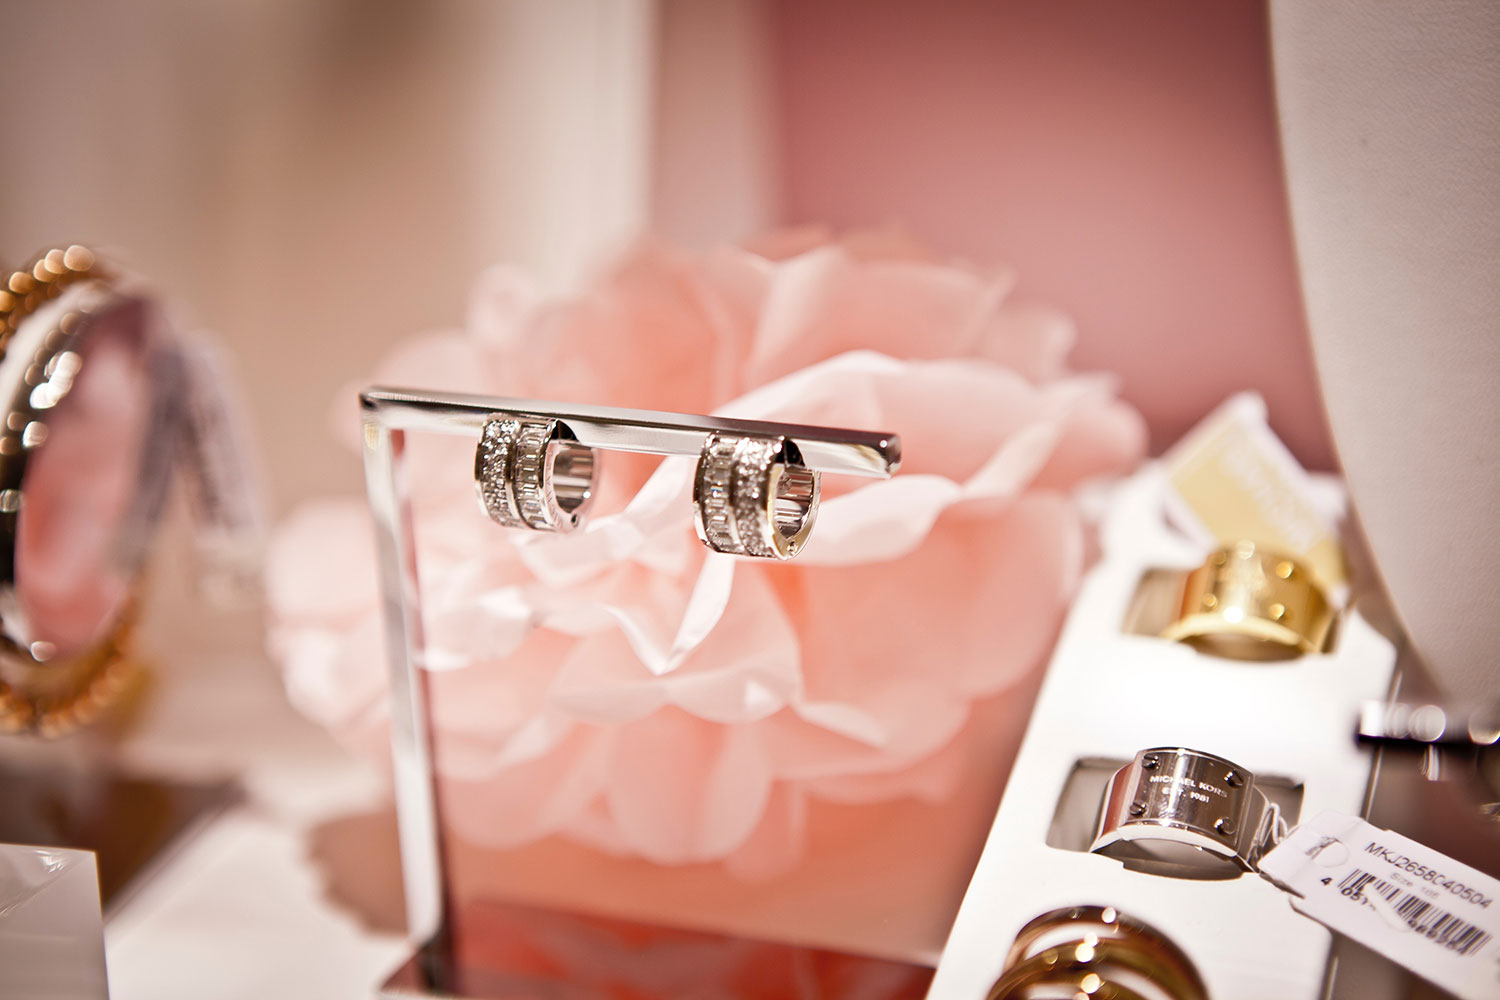 silver wedding anniversary, wedding anniversary gifts